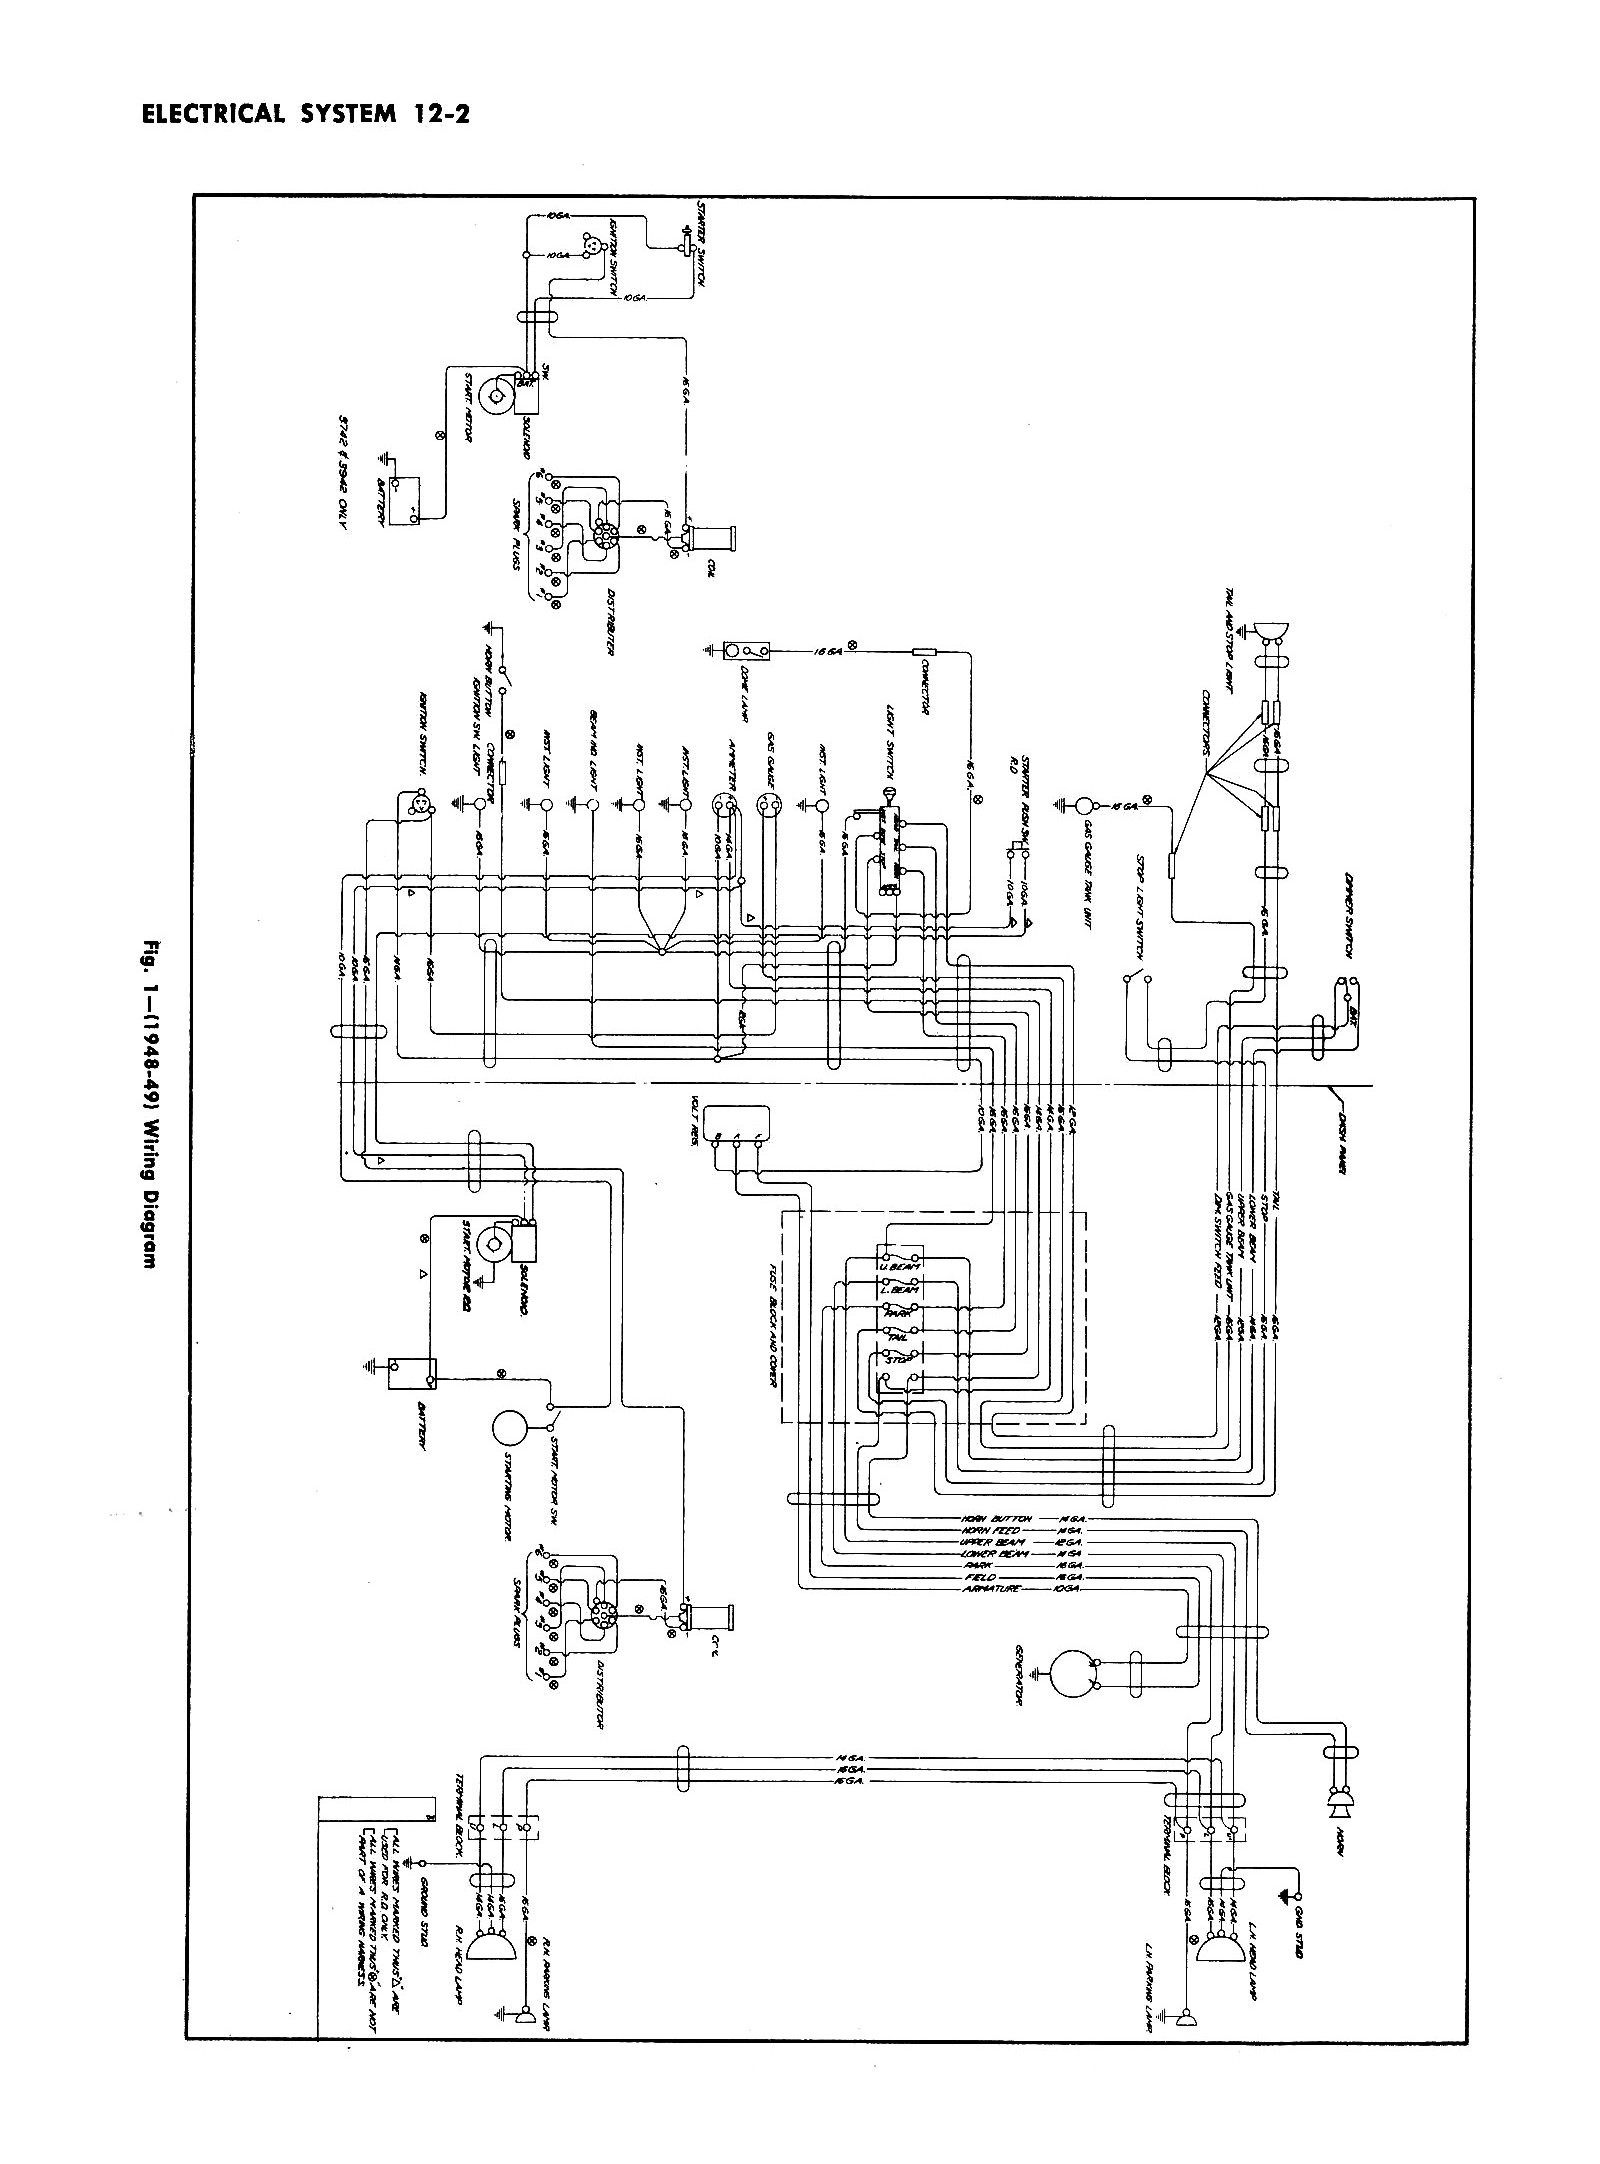 chevy wiring diagrams1954 Chevy Truck Wiring Diagram #13